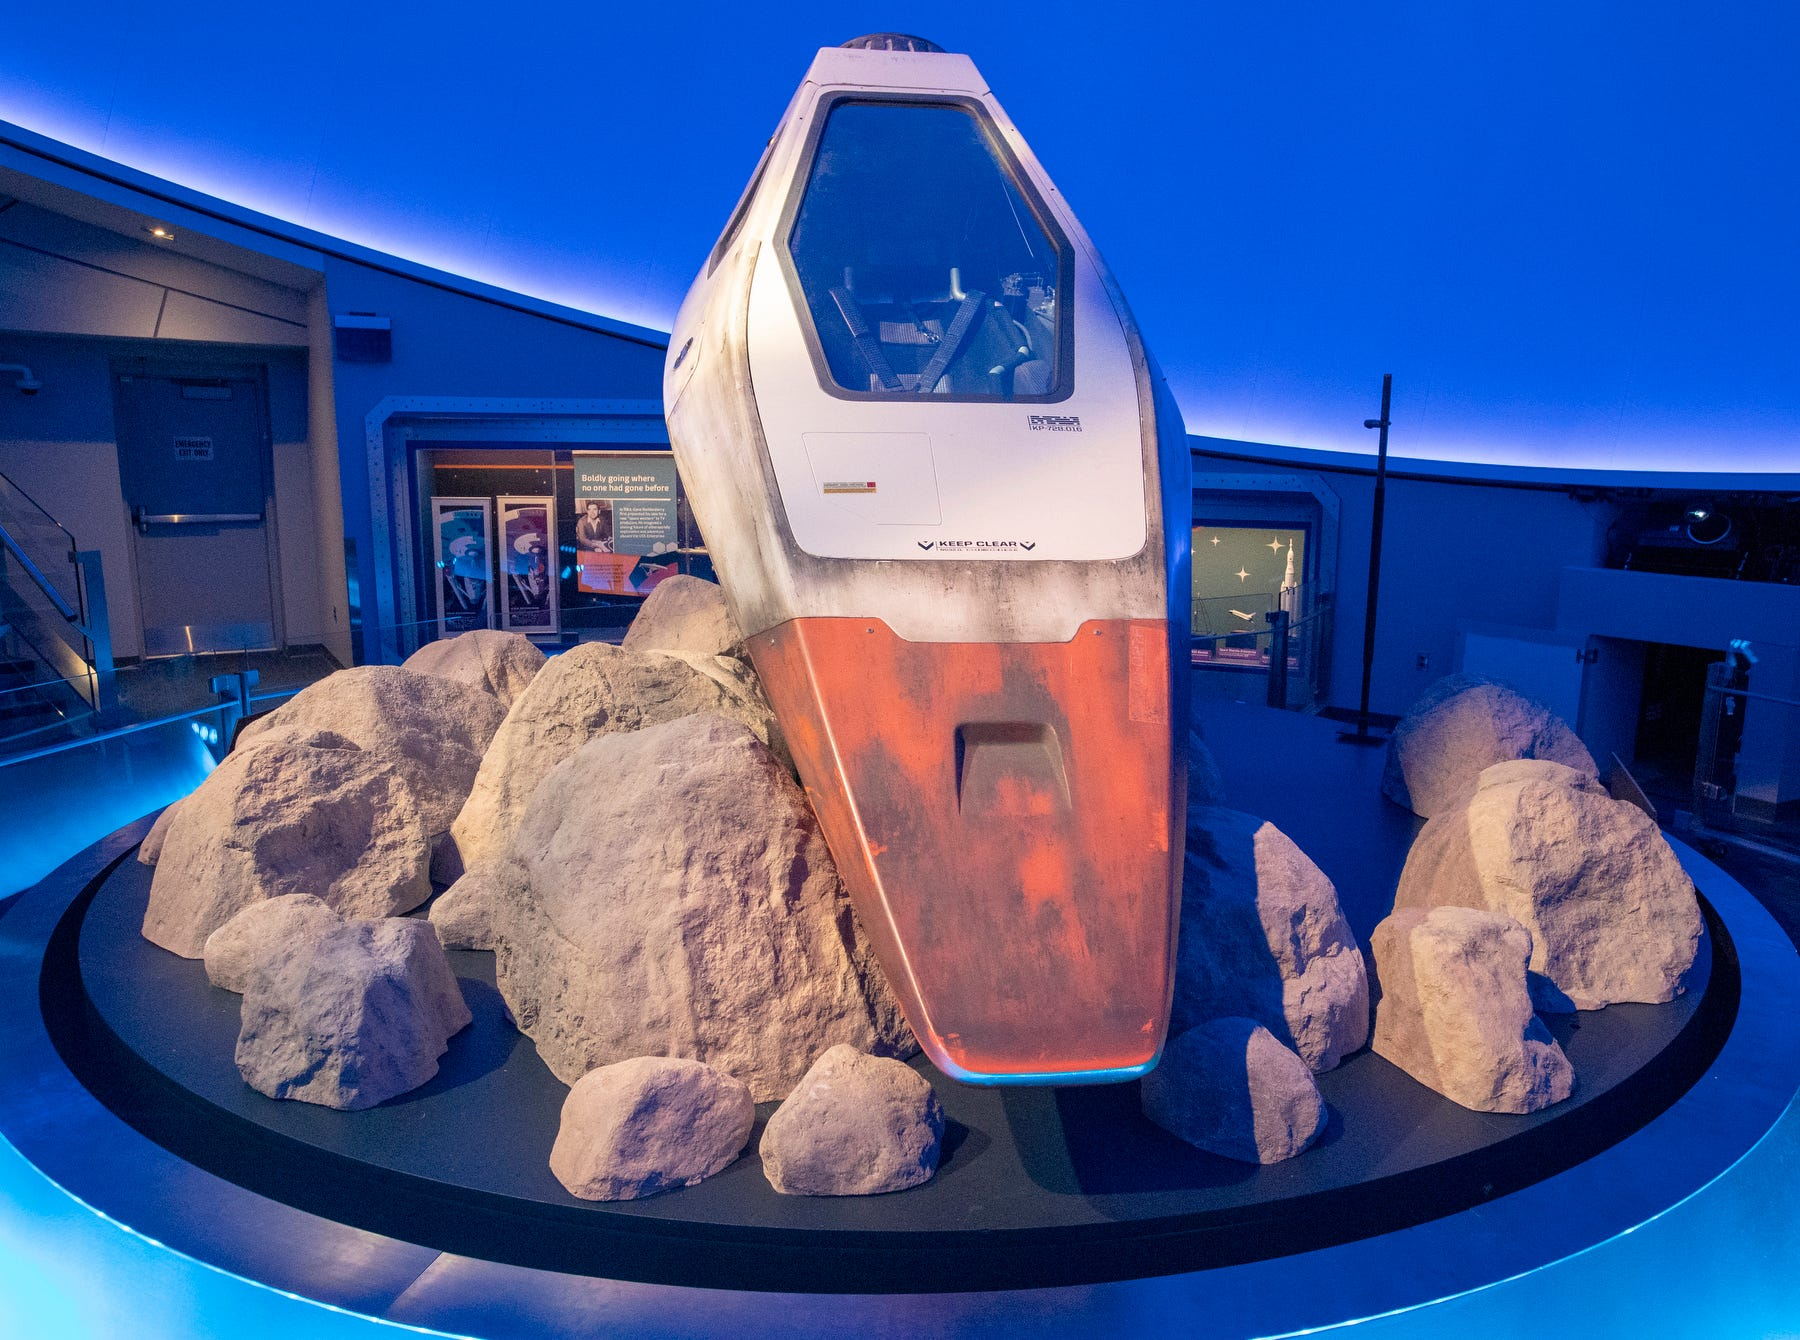 """An escape pod from the 2016 movie """"Star Trek Beyond"""" is seen at The Children's Museum of Indianapolis, Wednesday, Jan. 23, 2019. The """"Star Trek: Exploring New Worlds"""" exhibit is made up of set pieces, ship models and outfits used during various Star Trek shows and movies and is on display at the museum from Feb. 2 through April 7, 2019."""